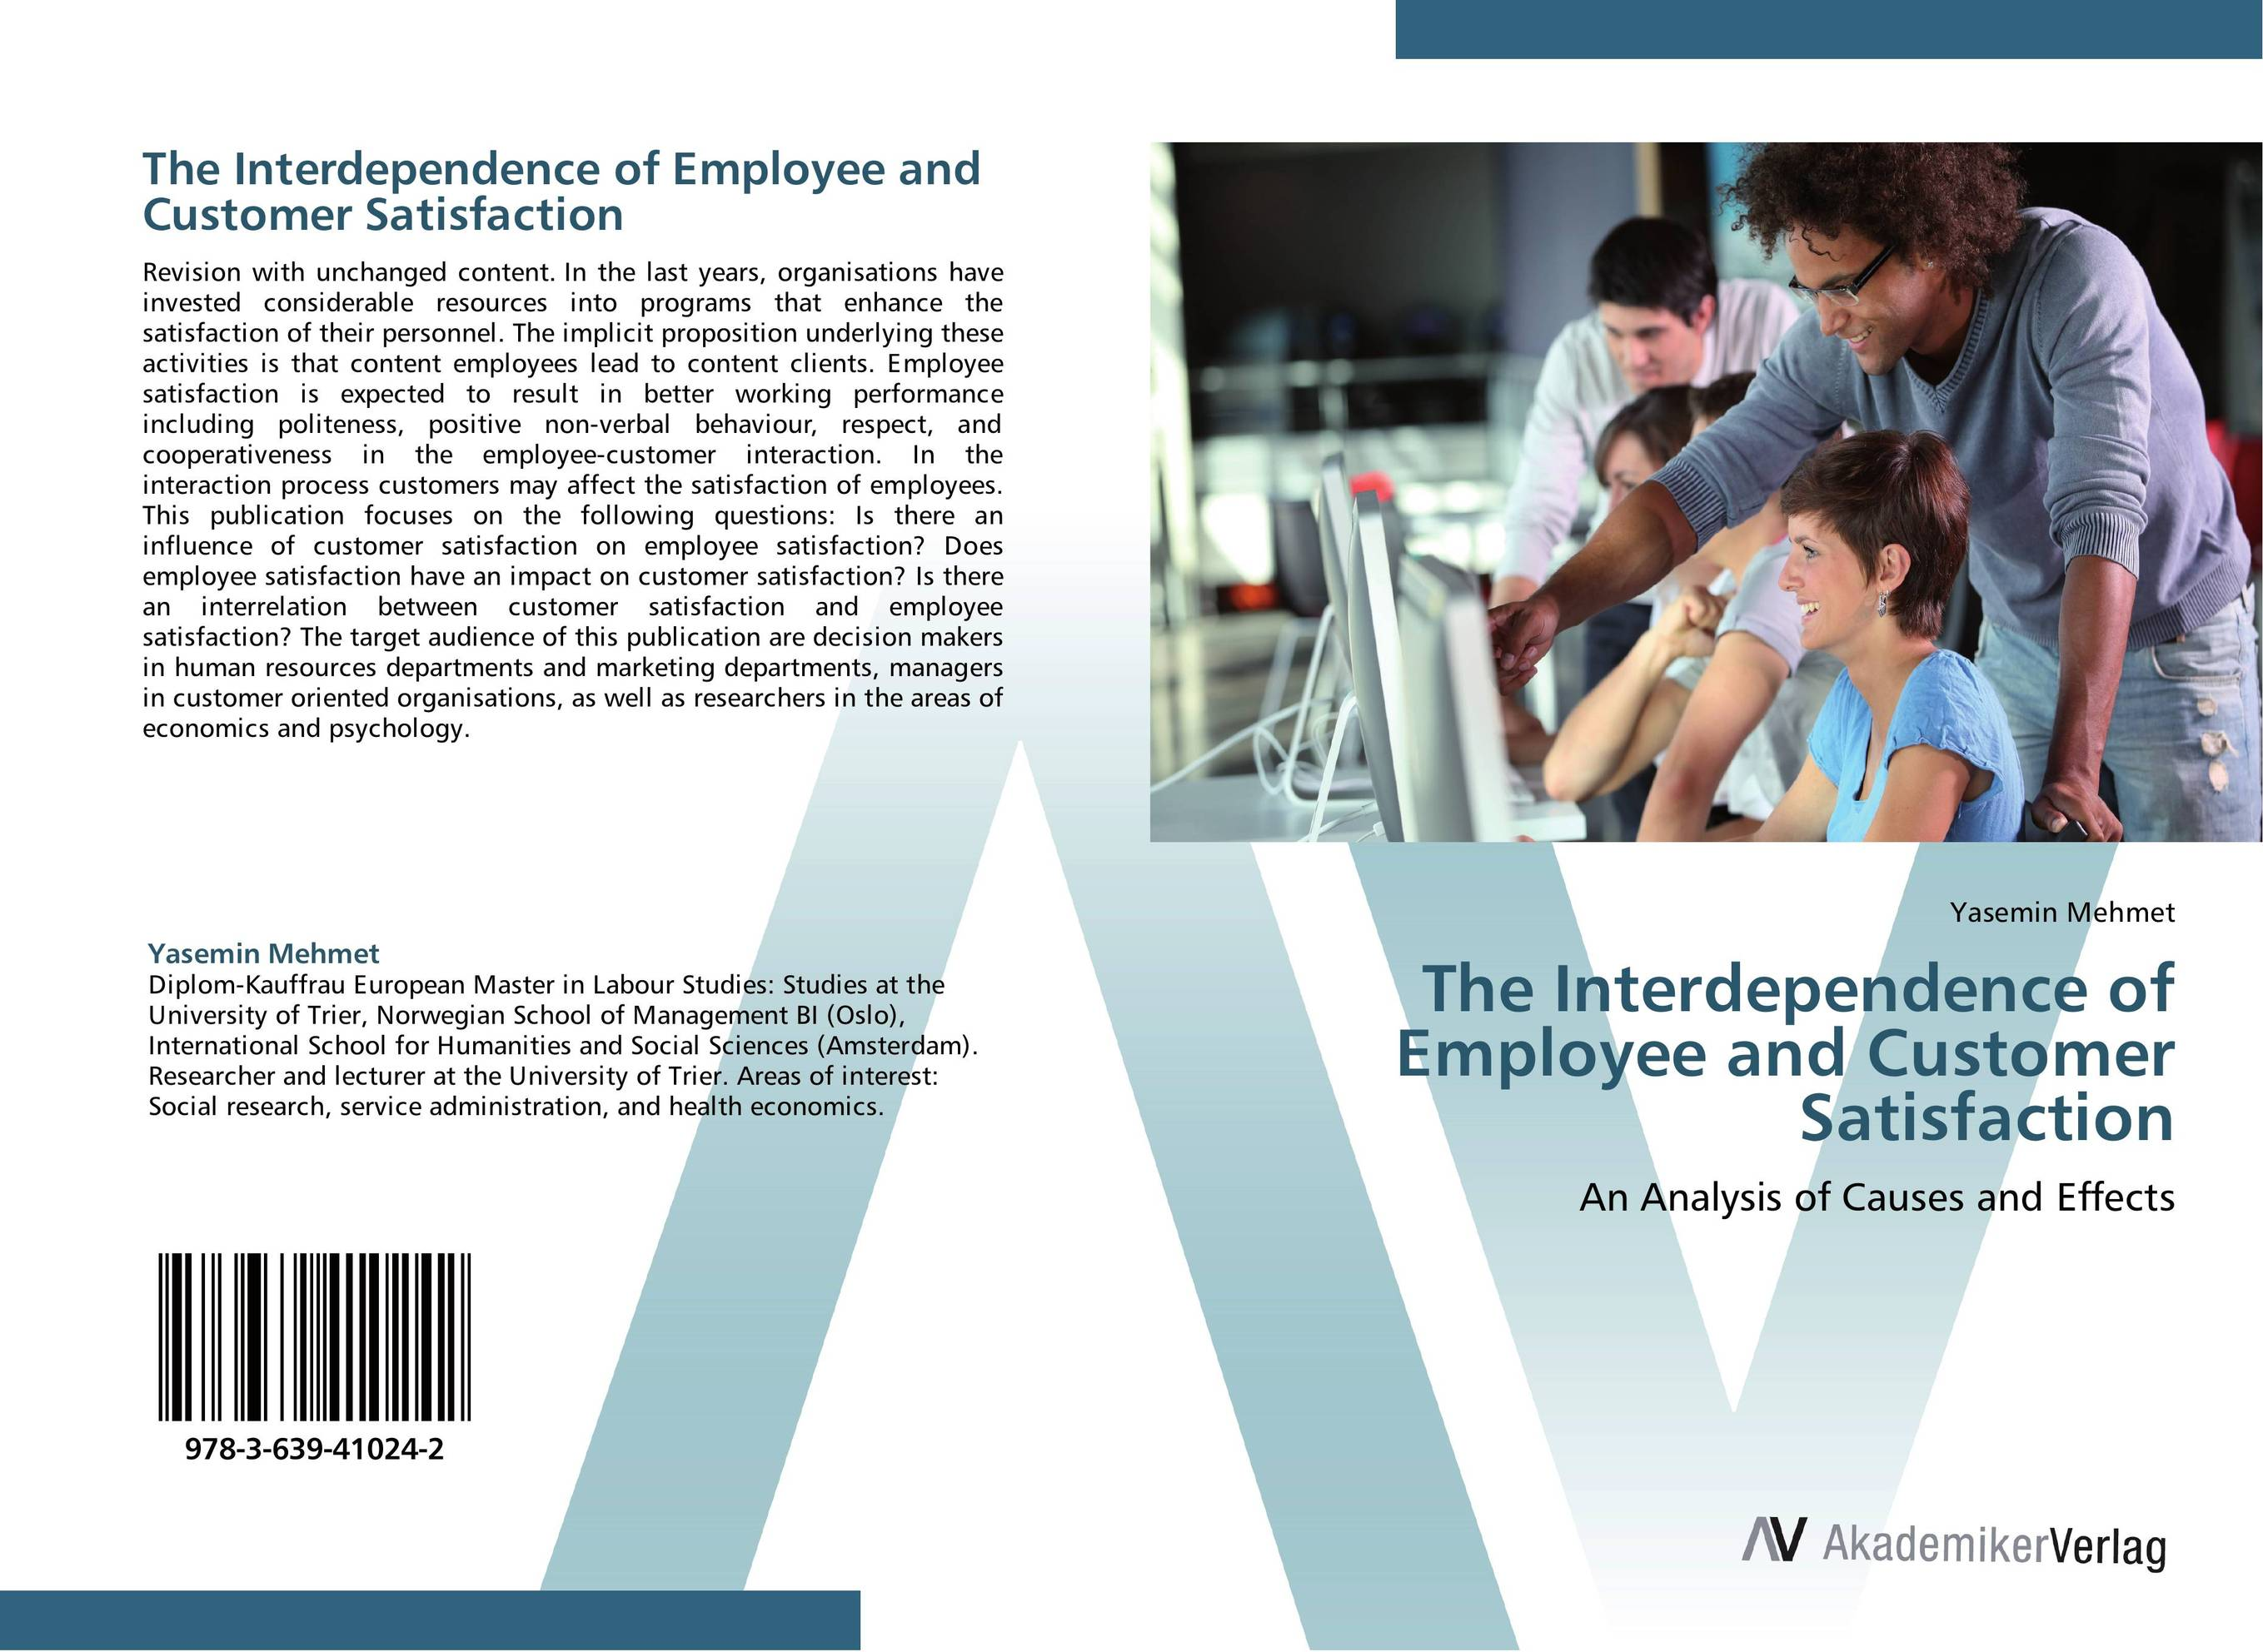 The Interdependence of Employee and Customer Satisfaction impact of job satisfaction on turnover intentions